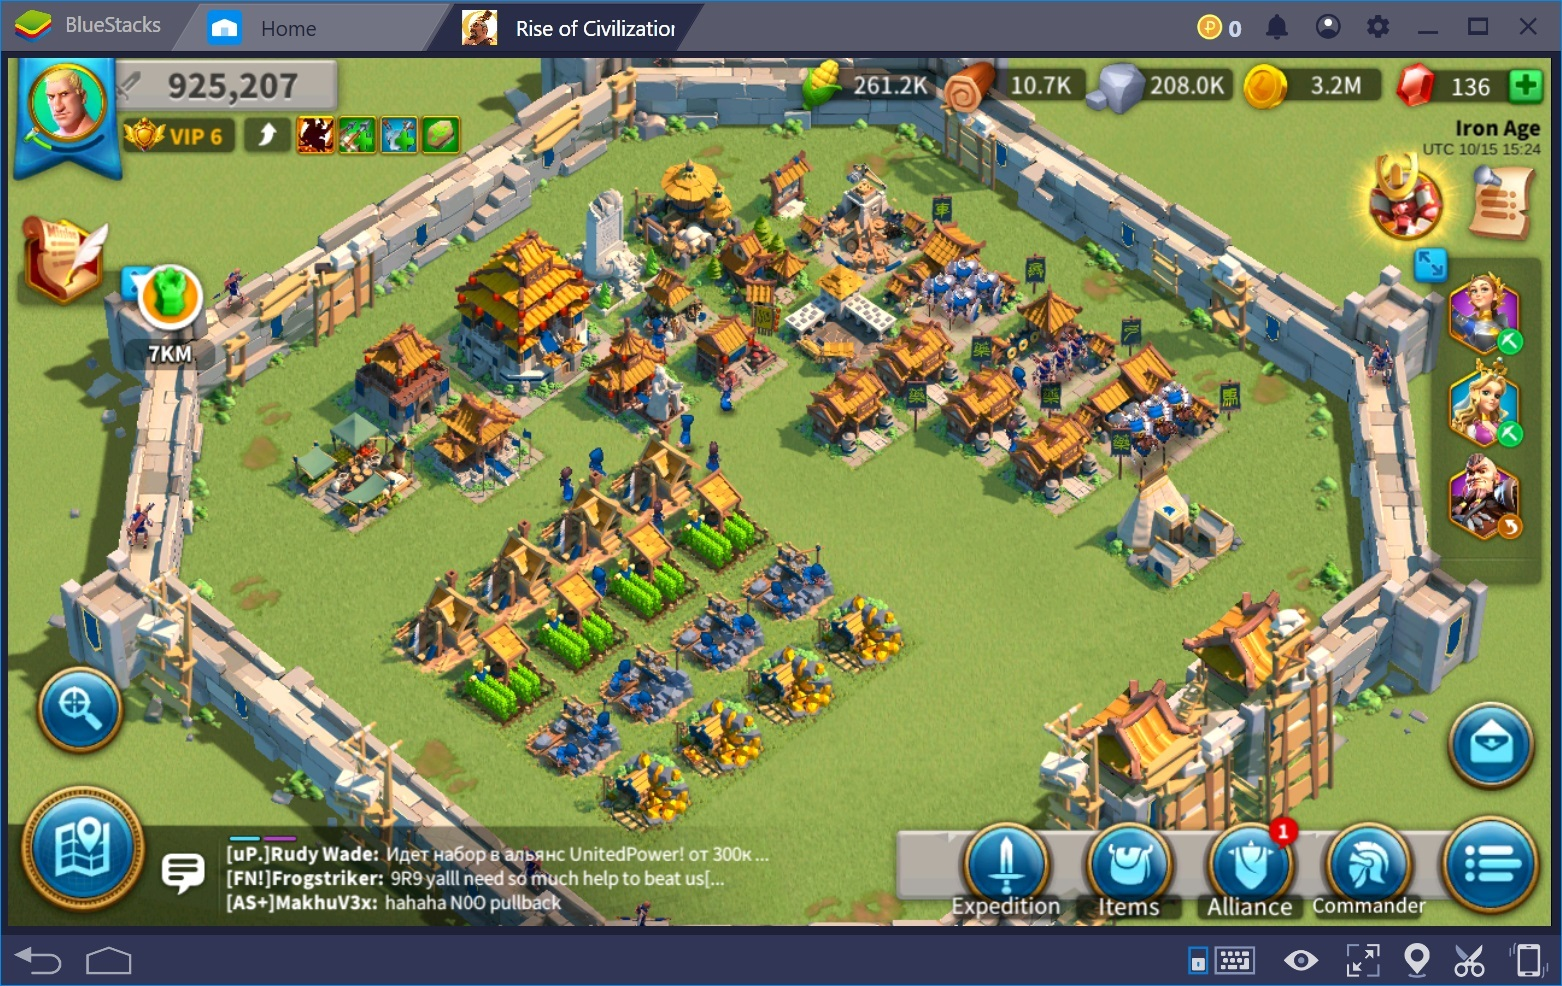 Rise of Kingdoms City Building Guide: Create Your Own Urban